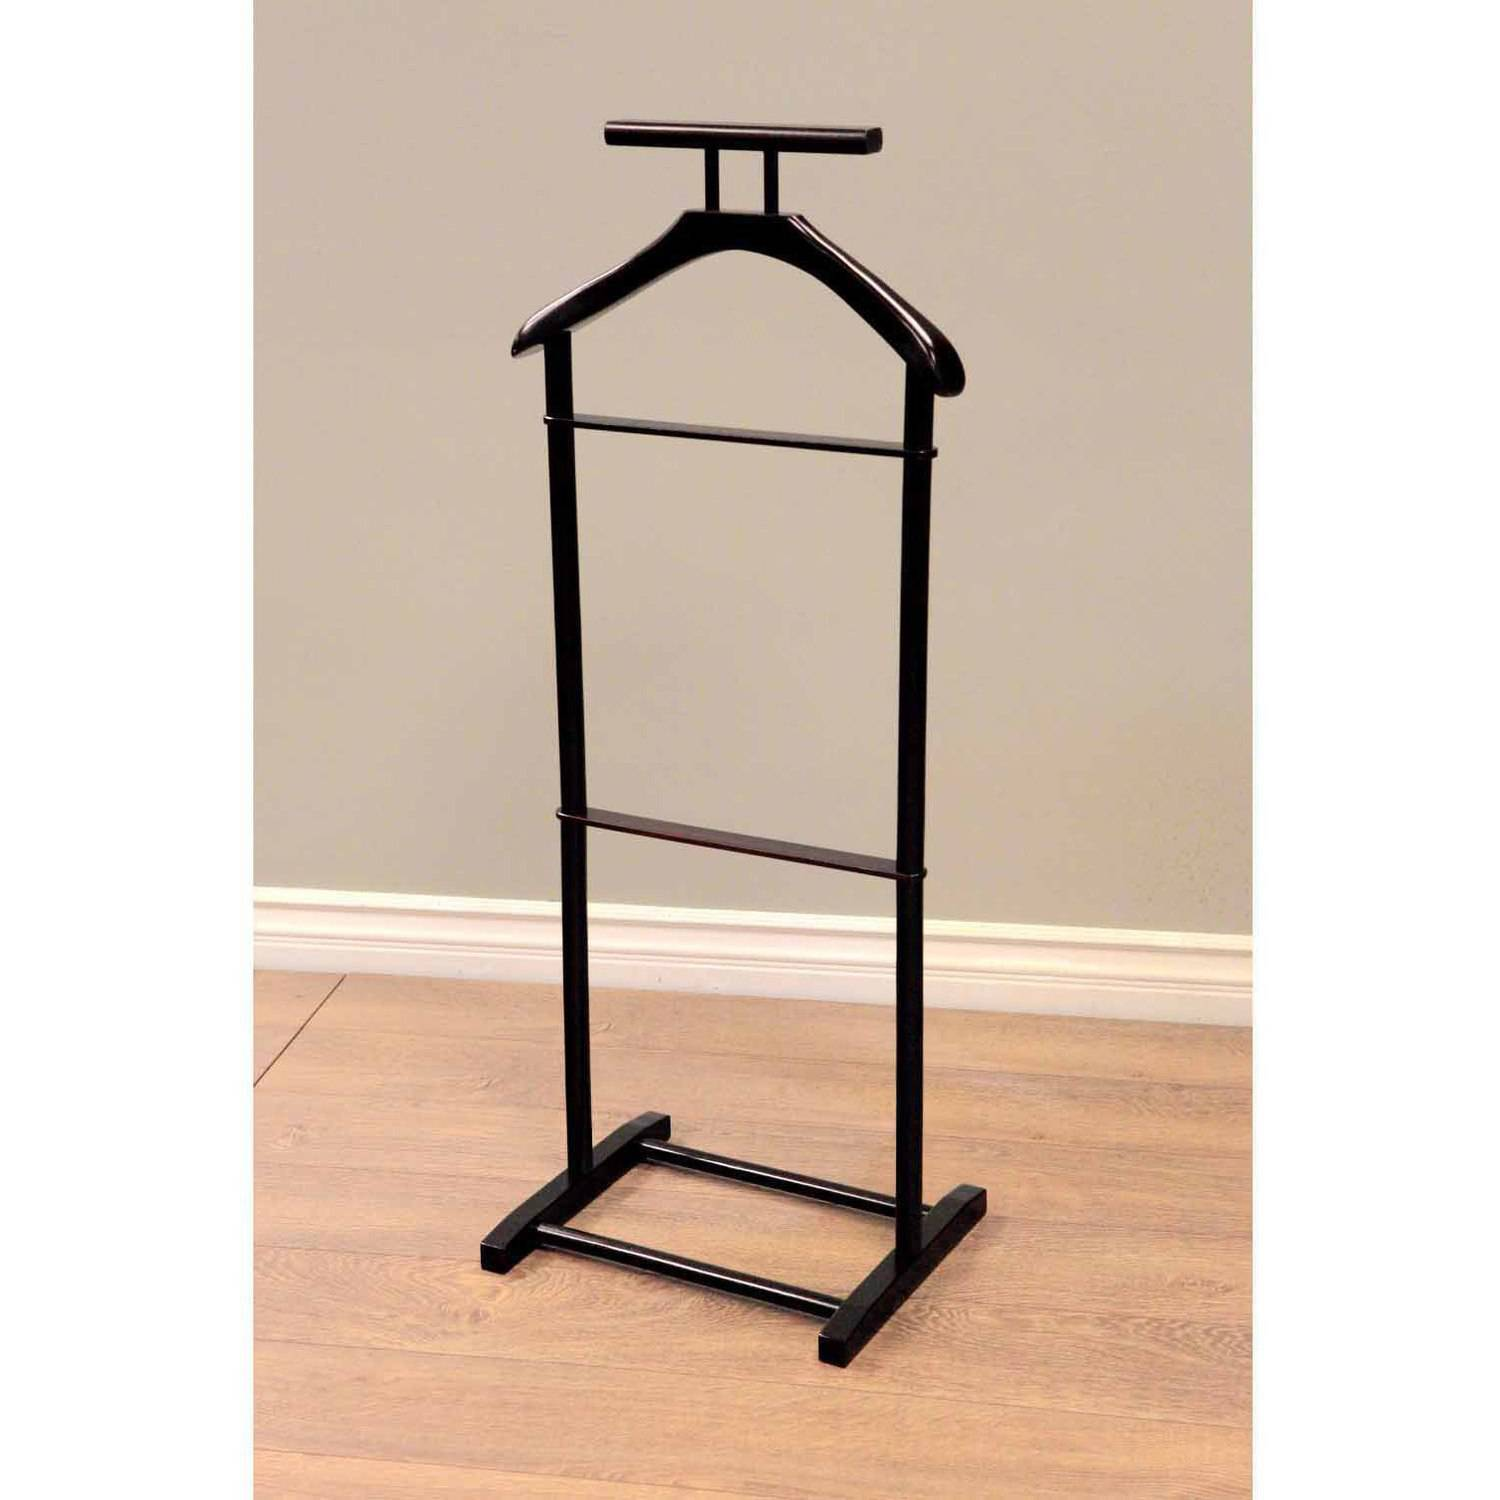 Home Craft Men's Valet Stand